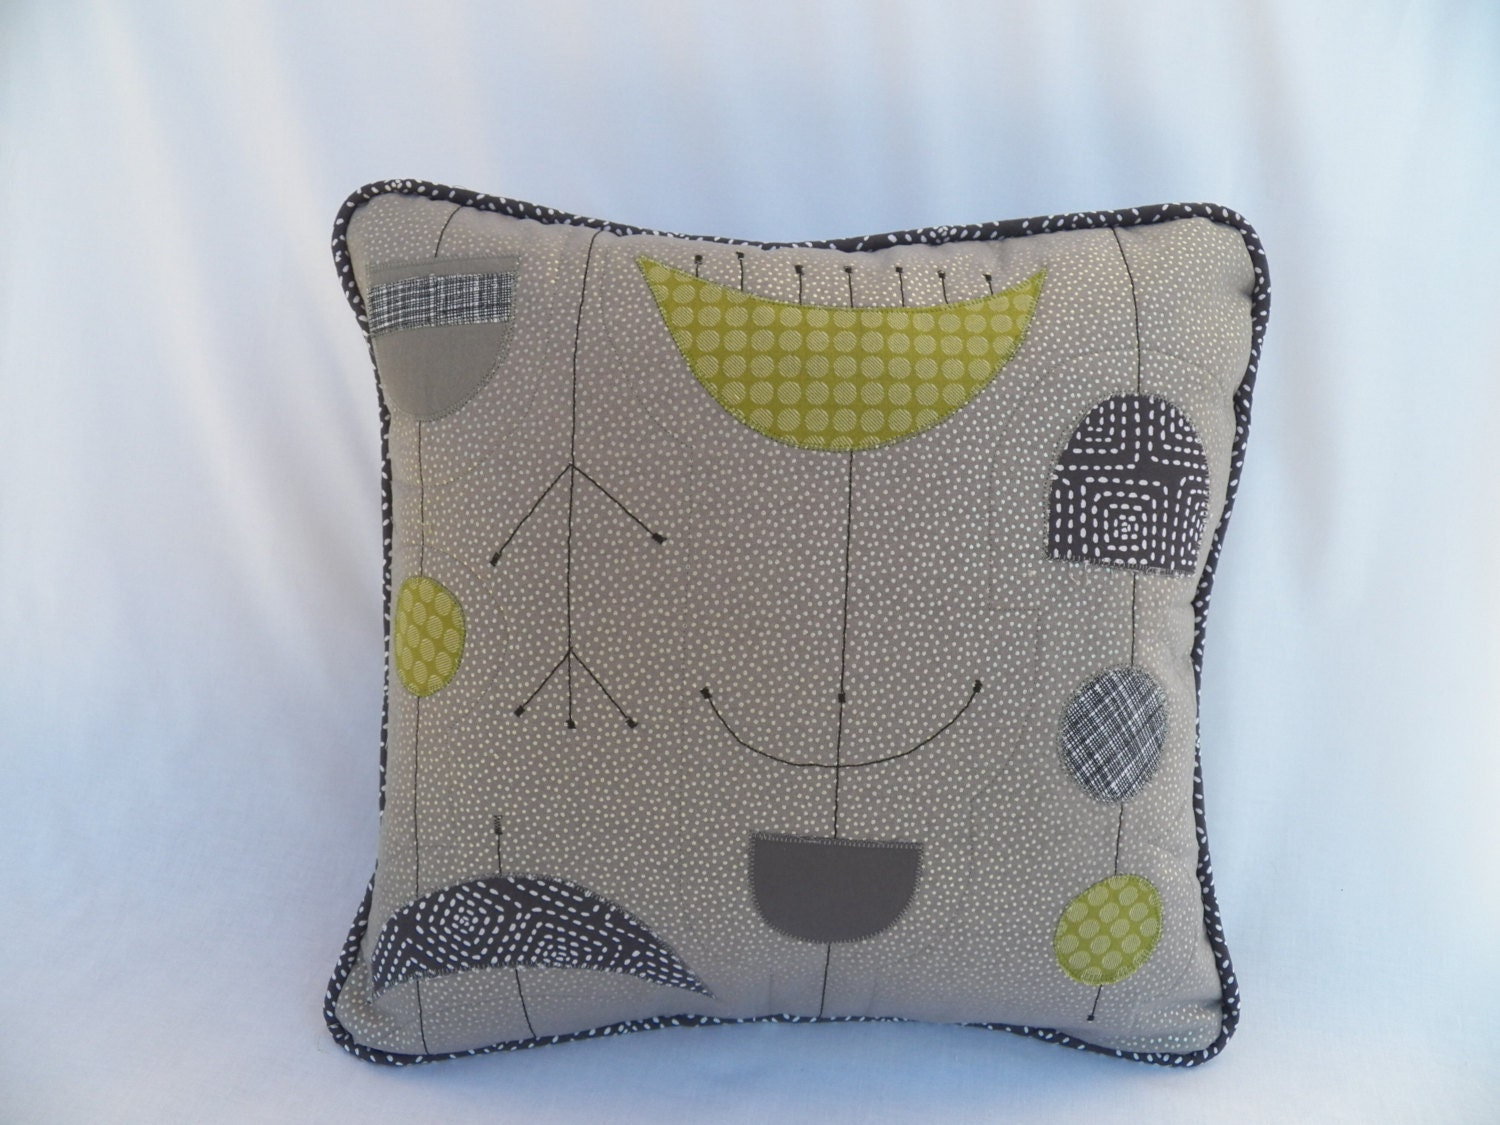 Mid Century Modern Pillow Covers : Mid-Century Modern Style Pillow Cover in gray and green